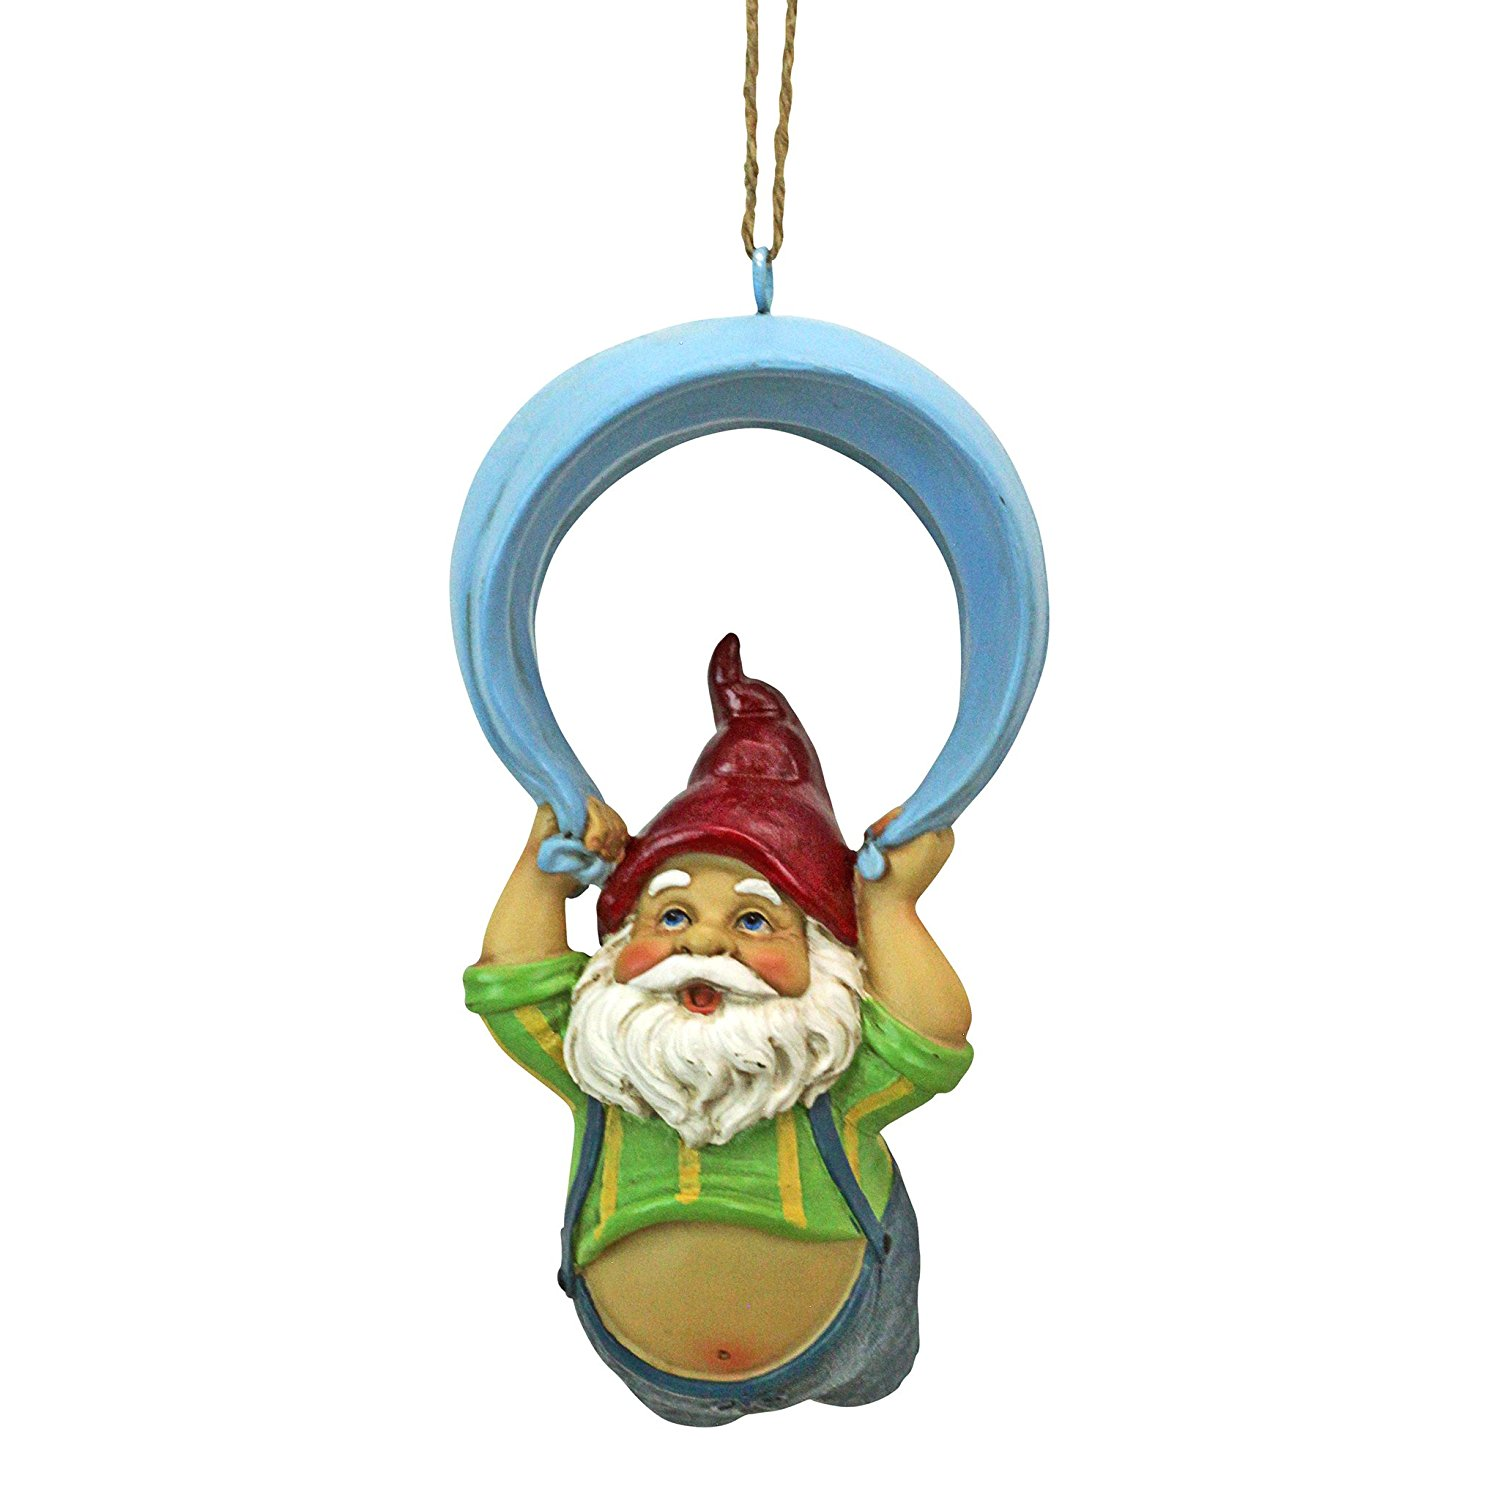 Design Toscano QL30697 Paavo and his Parachute Adrenaline Junkie Hanging Garden Statue Gnome, One Size, Multi-Color